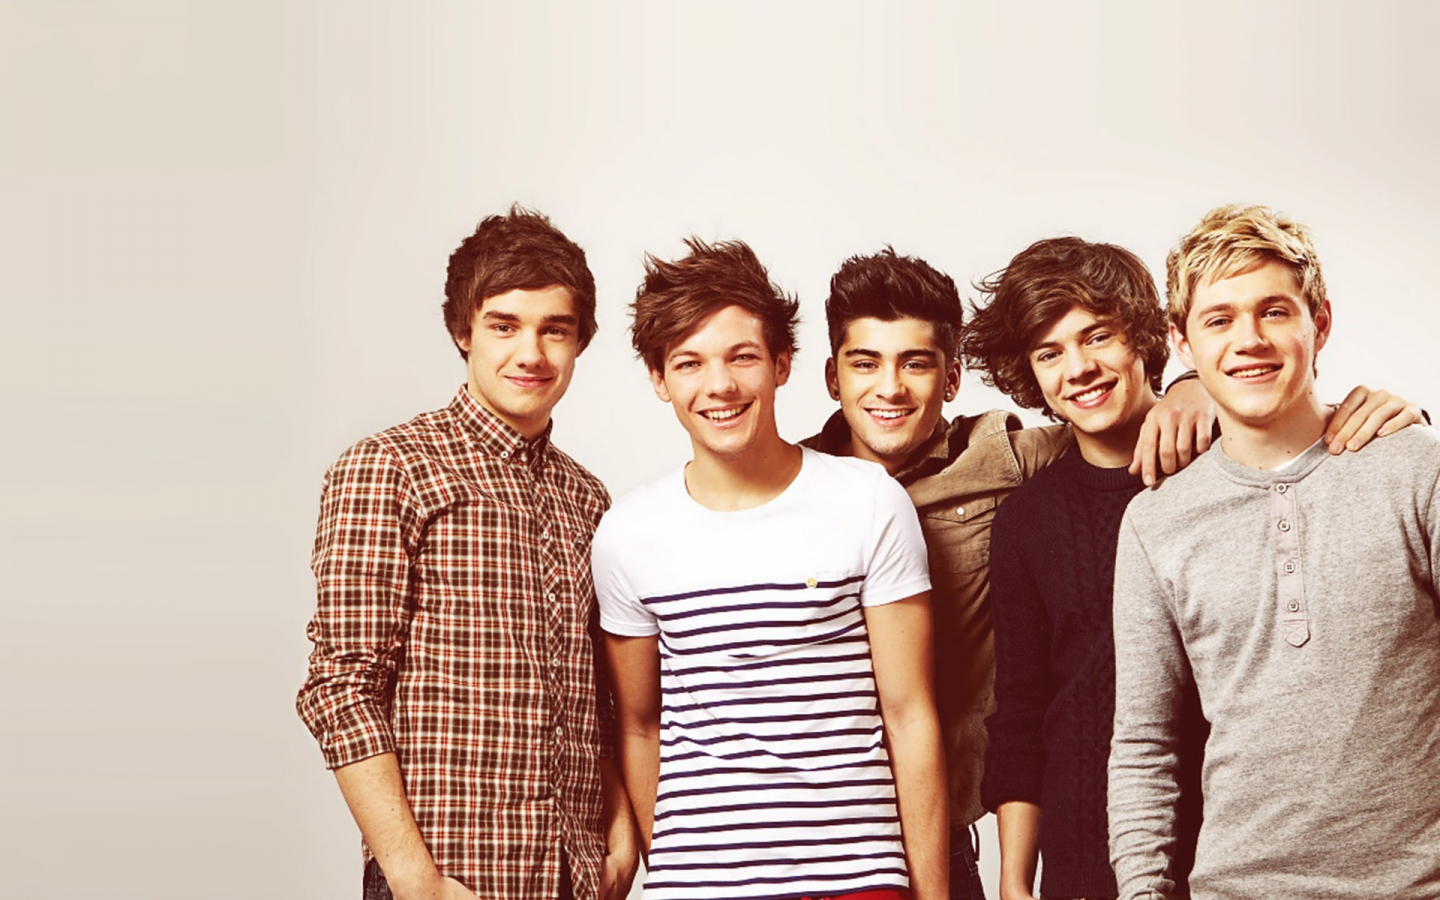 One Direction Young for 1440 x 900 widescreen resolution